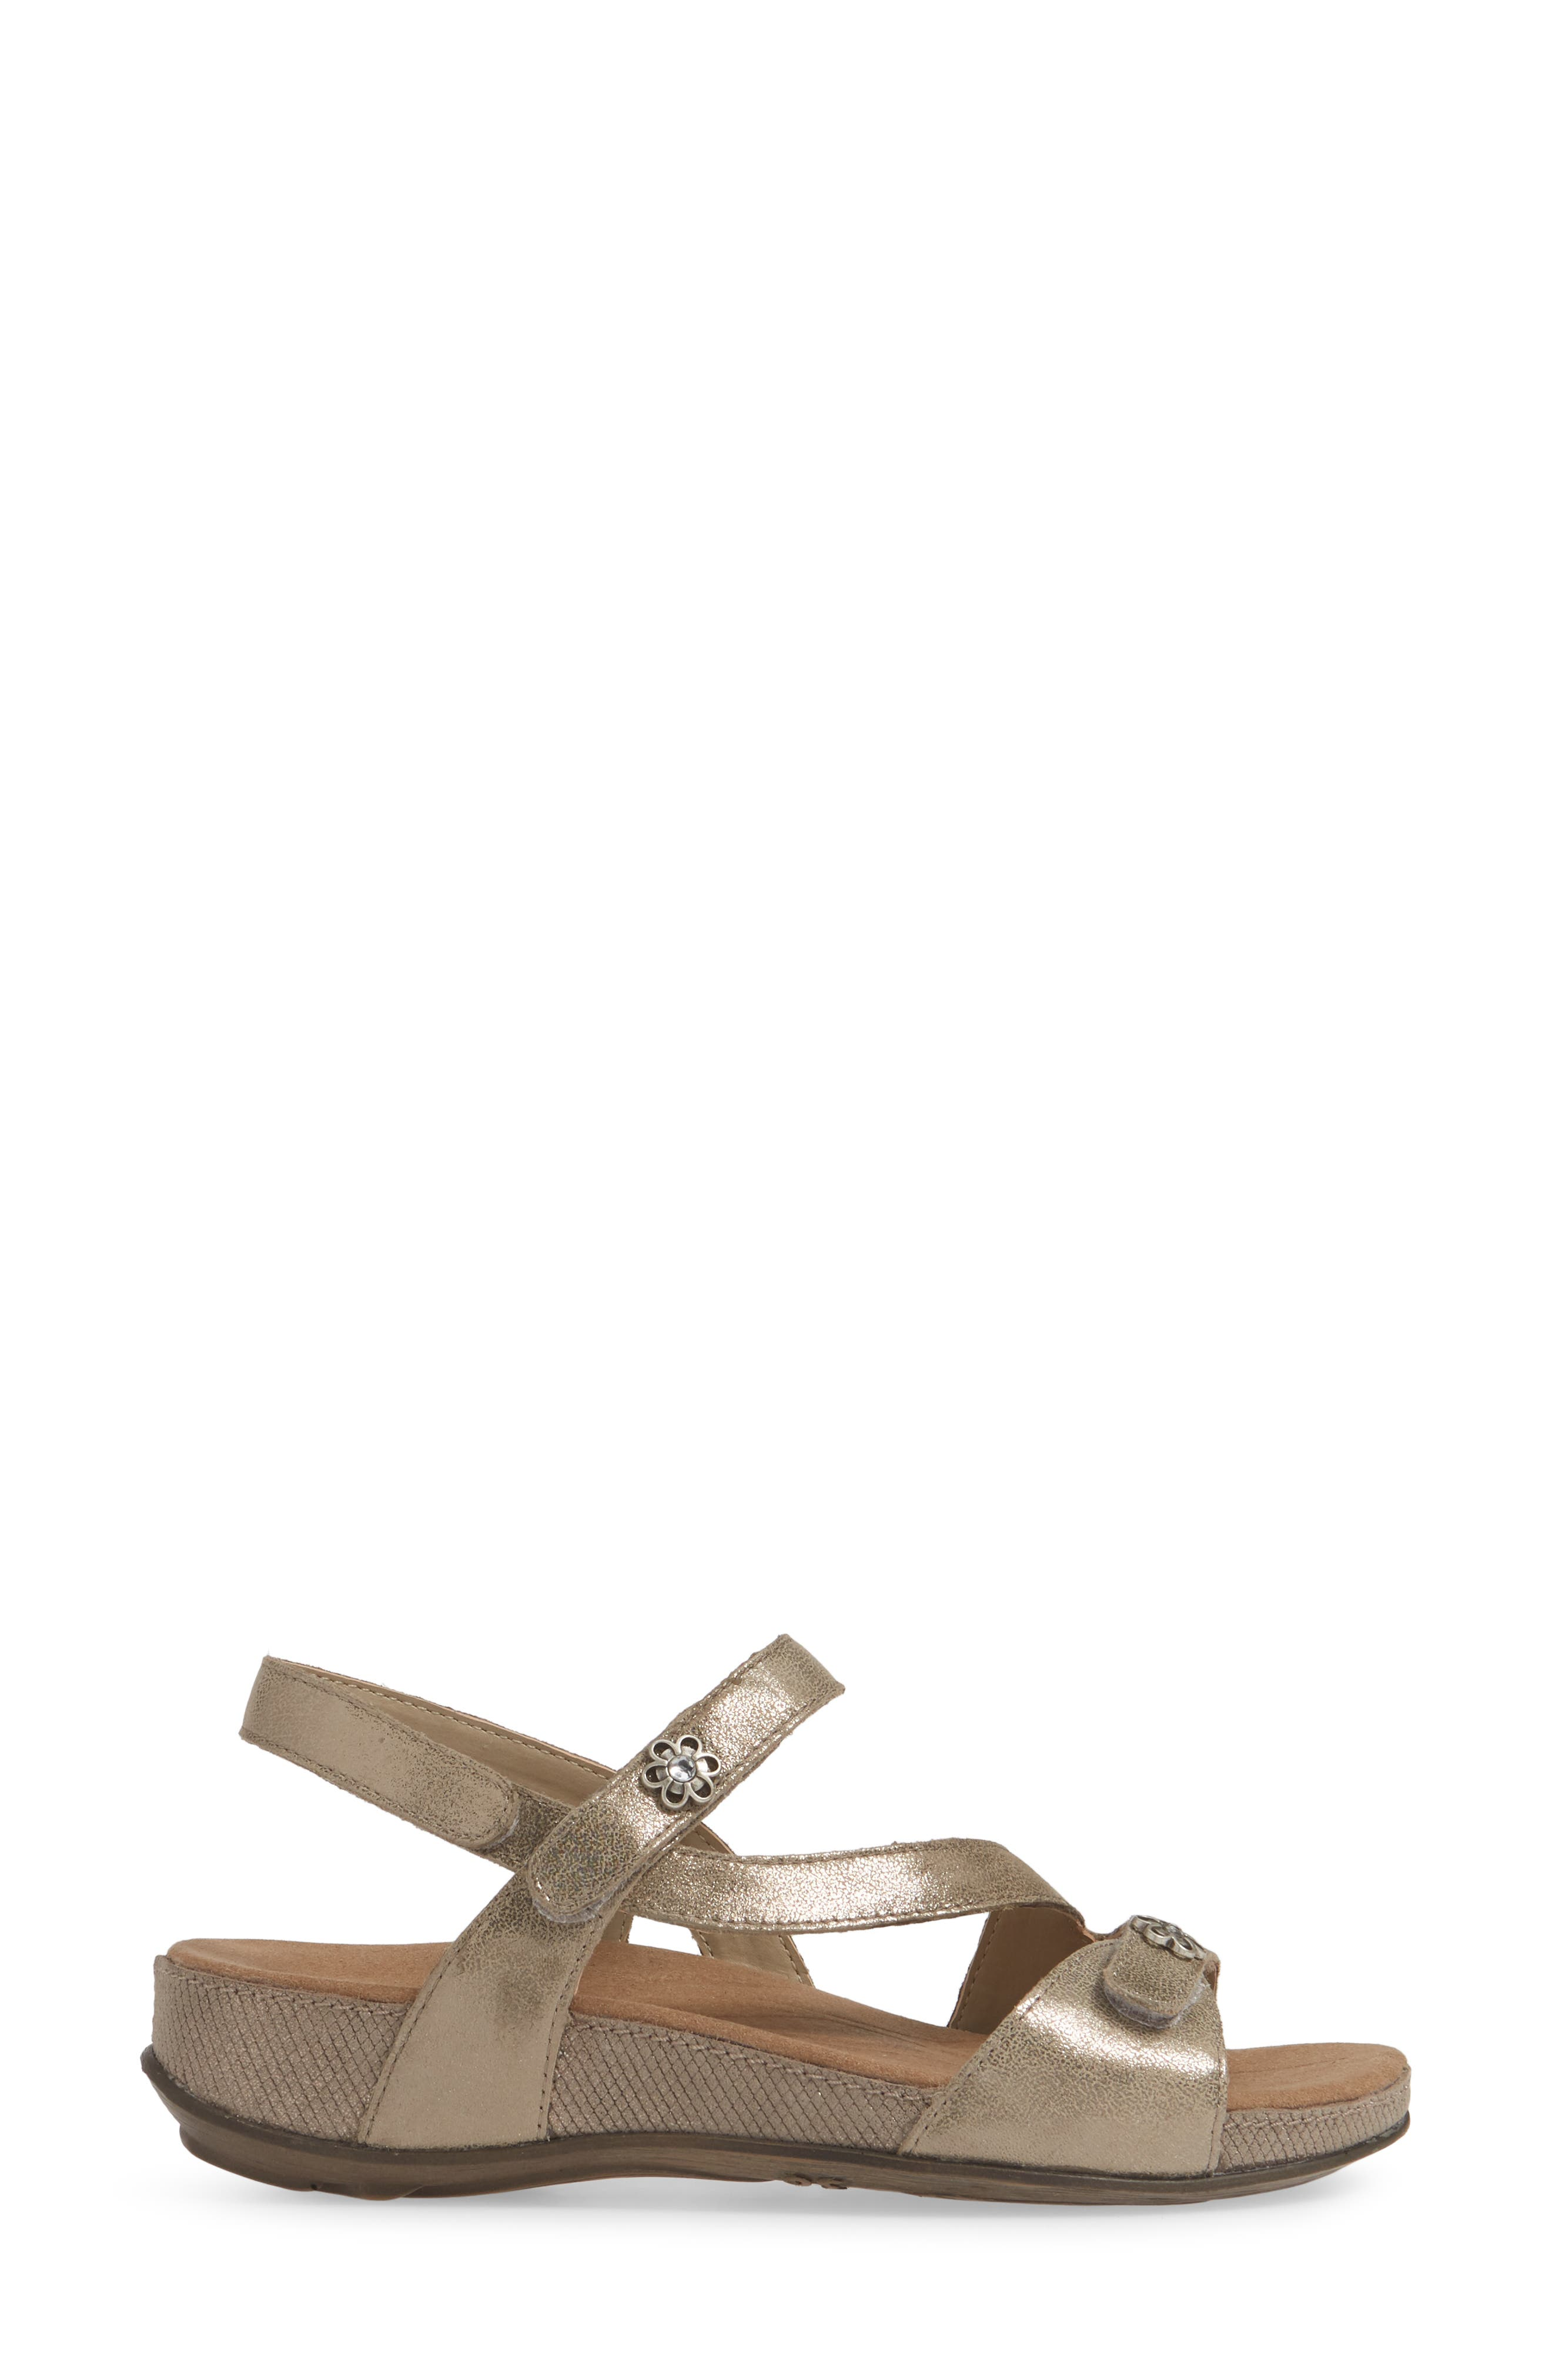 ROMIKA<SUP>®</SUP>, Fidschi 54 Sandal, Alternate thumbnail 3, color, BRONZE LEATHER